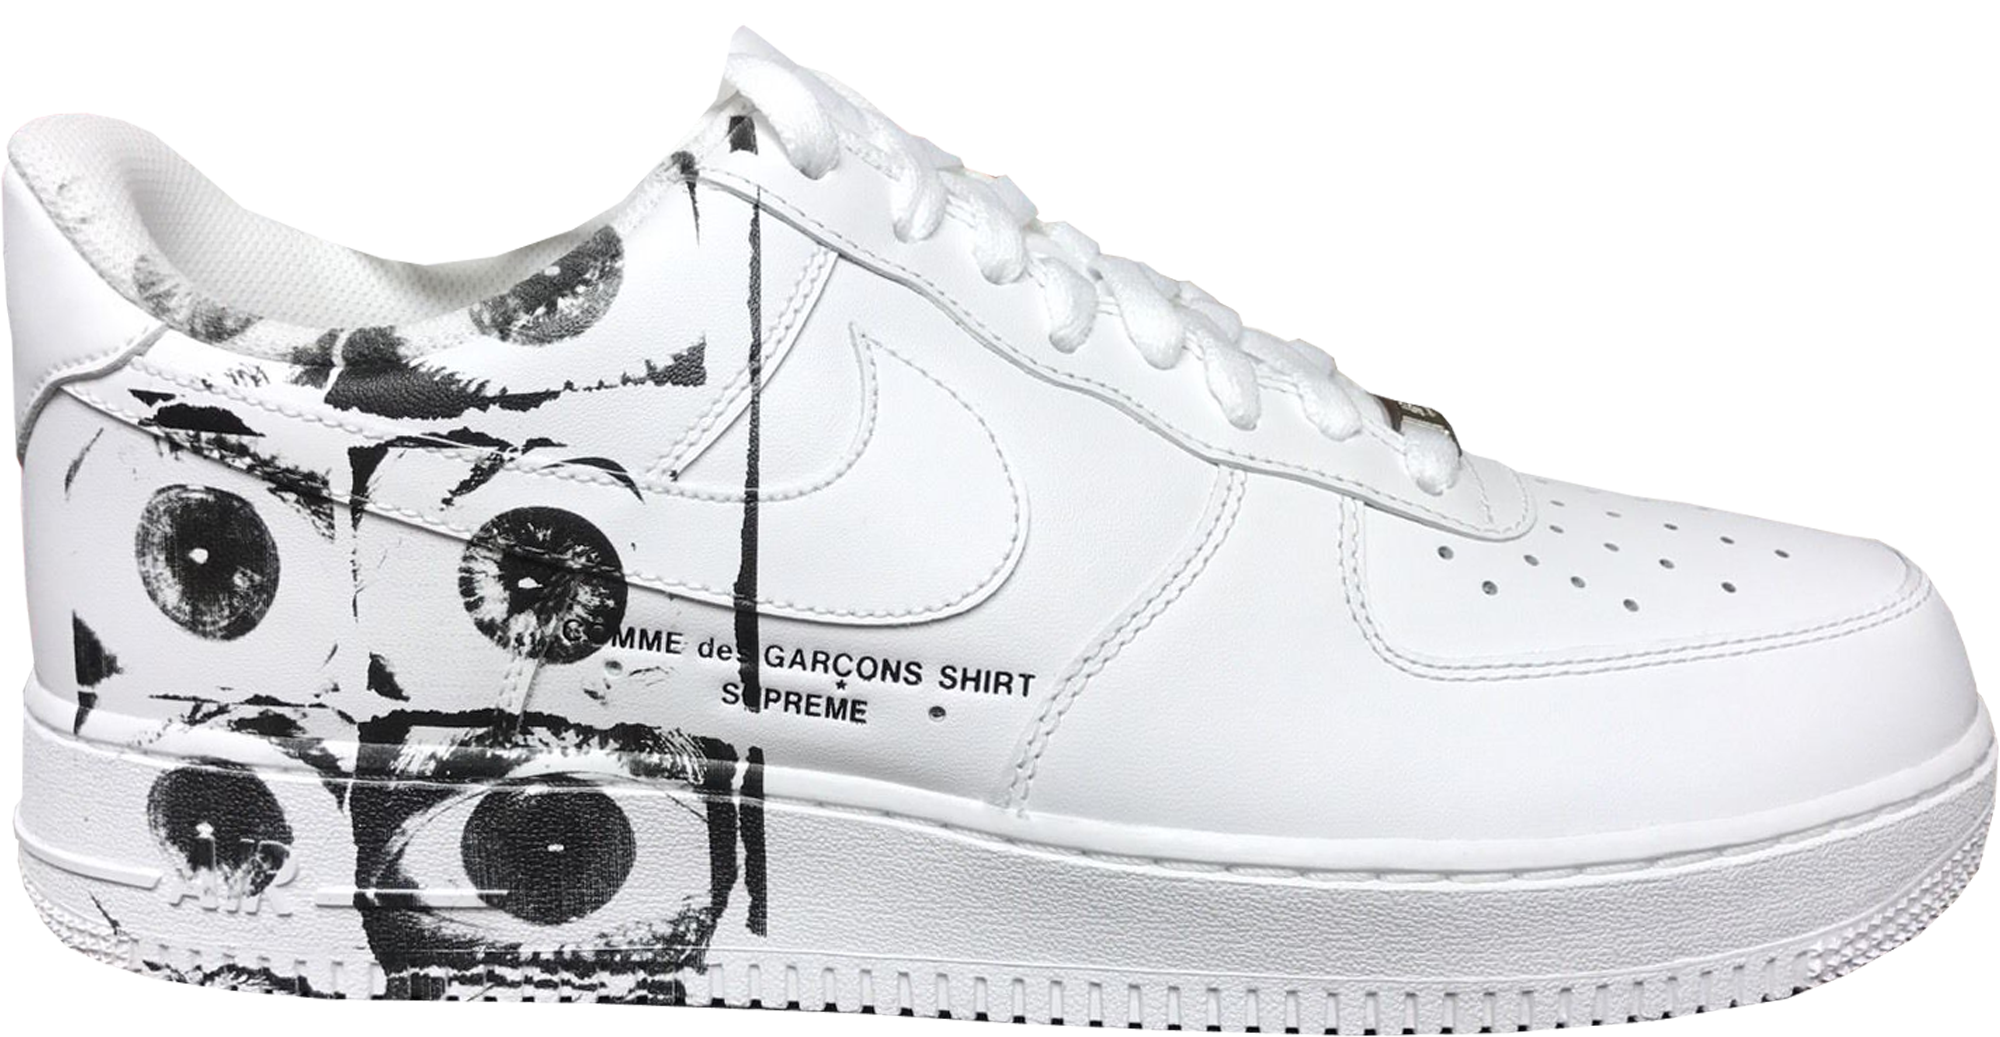 Días laborables Saco ego  Supreme x Comme des Garcons Shirt x Nike Air Force 1 Low White - StockX News